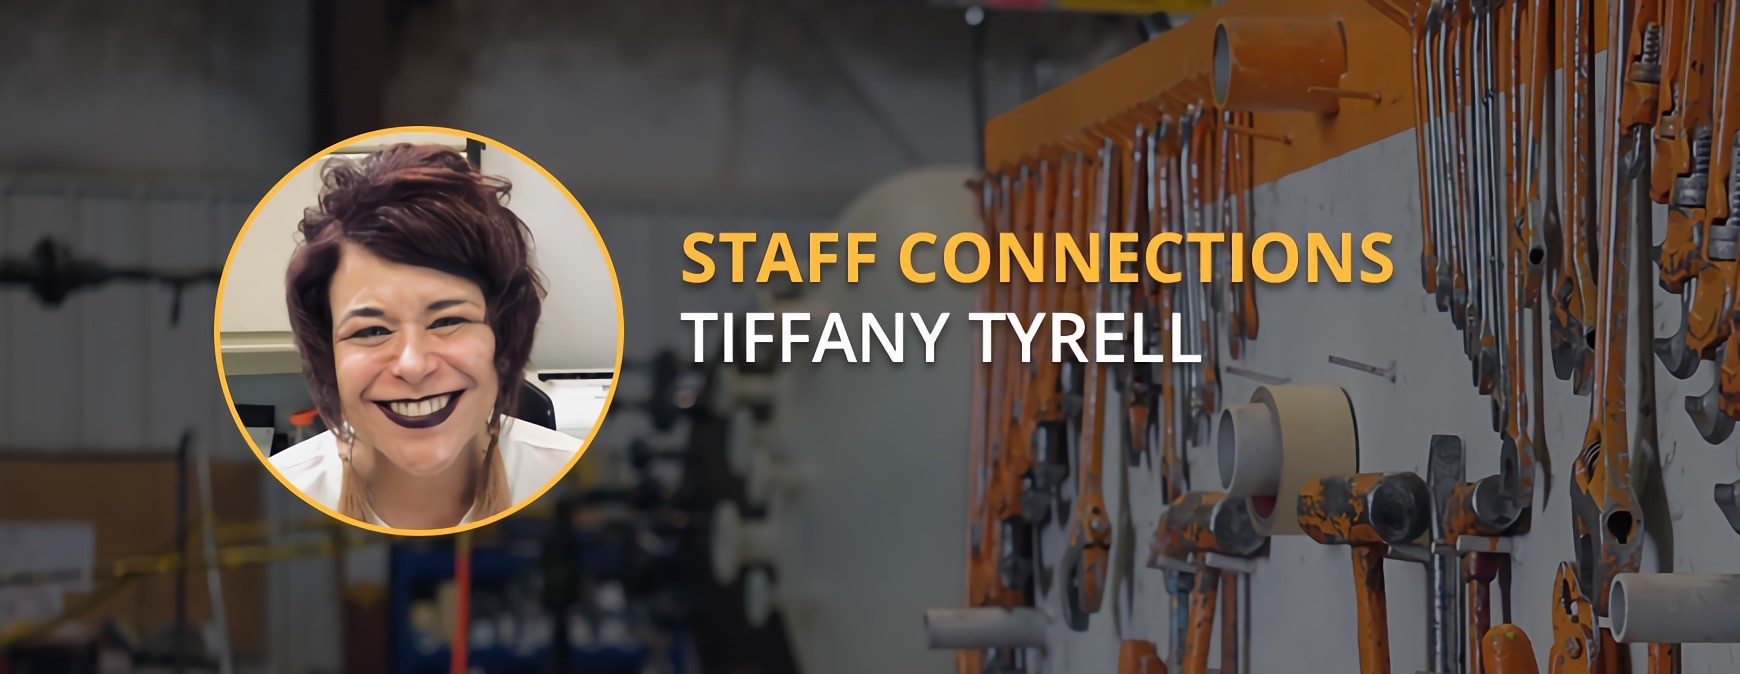 Tiffany Tyrrell staff connection